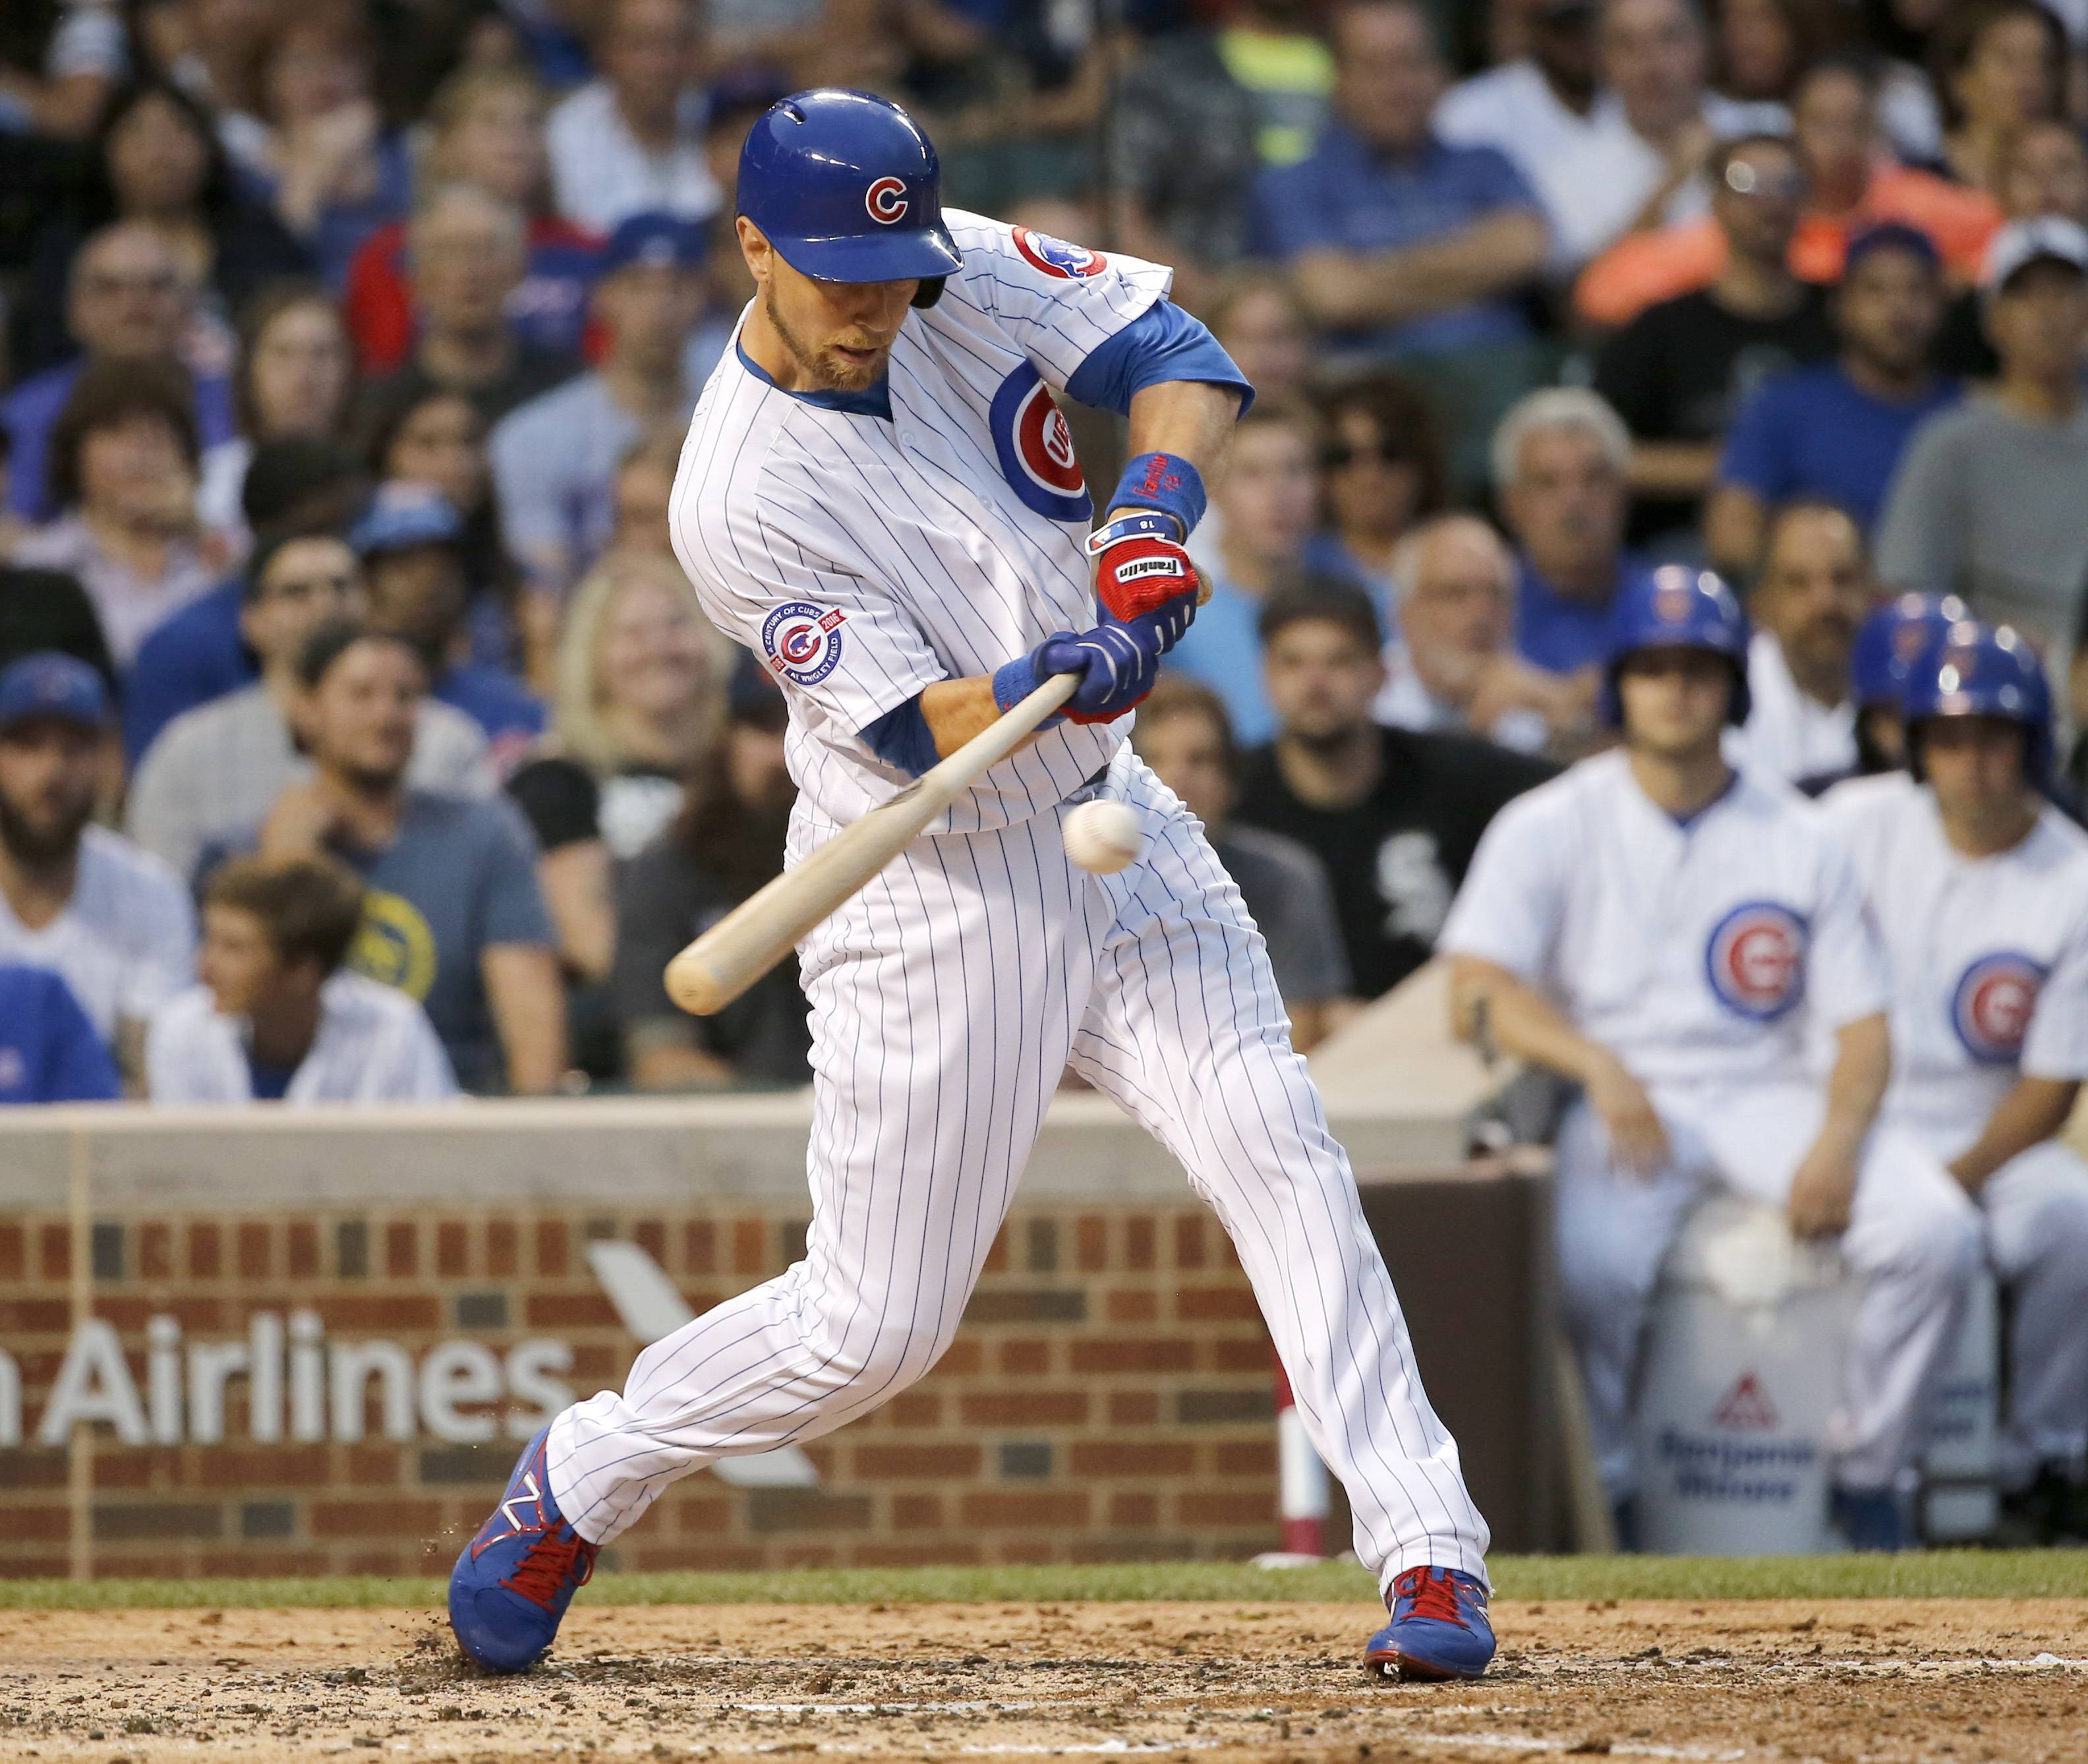 Chicago Cubs' Ben Zobrist hits an RBI single off Chicago White Sox starting pitcher Chris Sale during the third inning of a baseball game Thursday, July 28, 2016, in Chicago. (AP Photo/Charles Rex Arbogast)